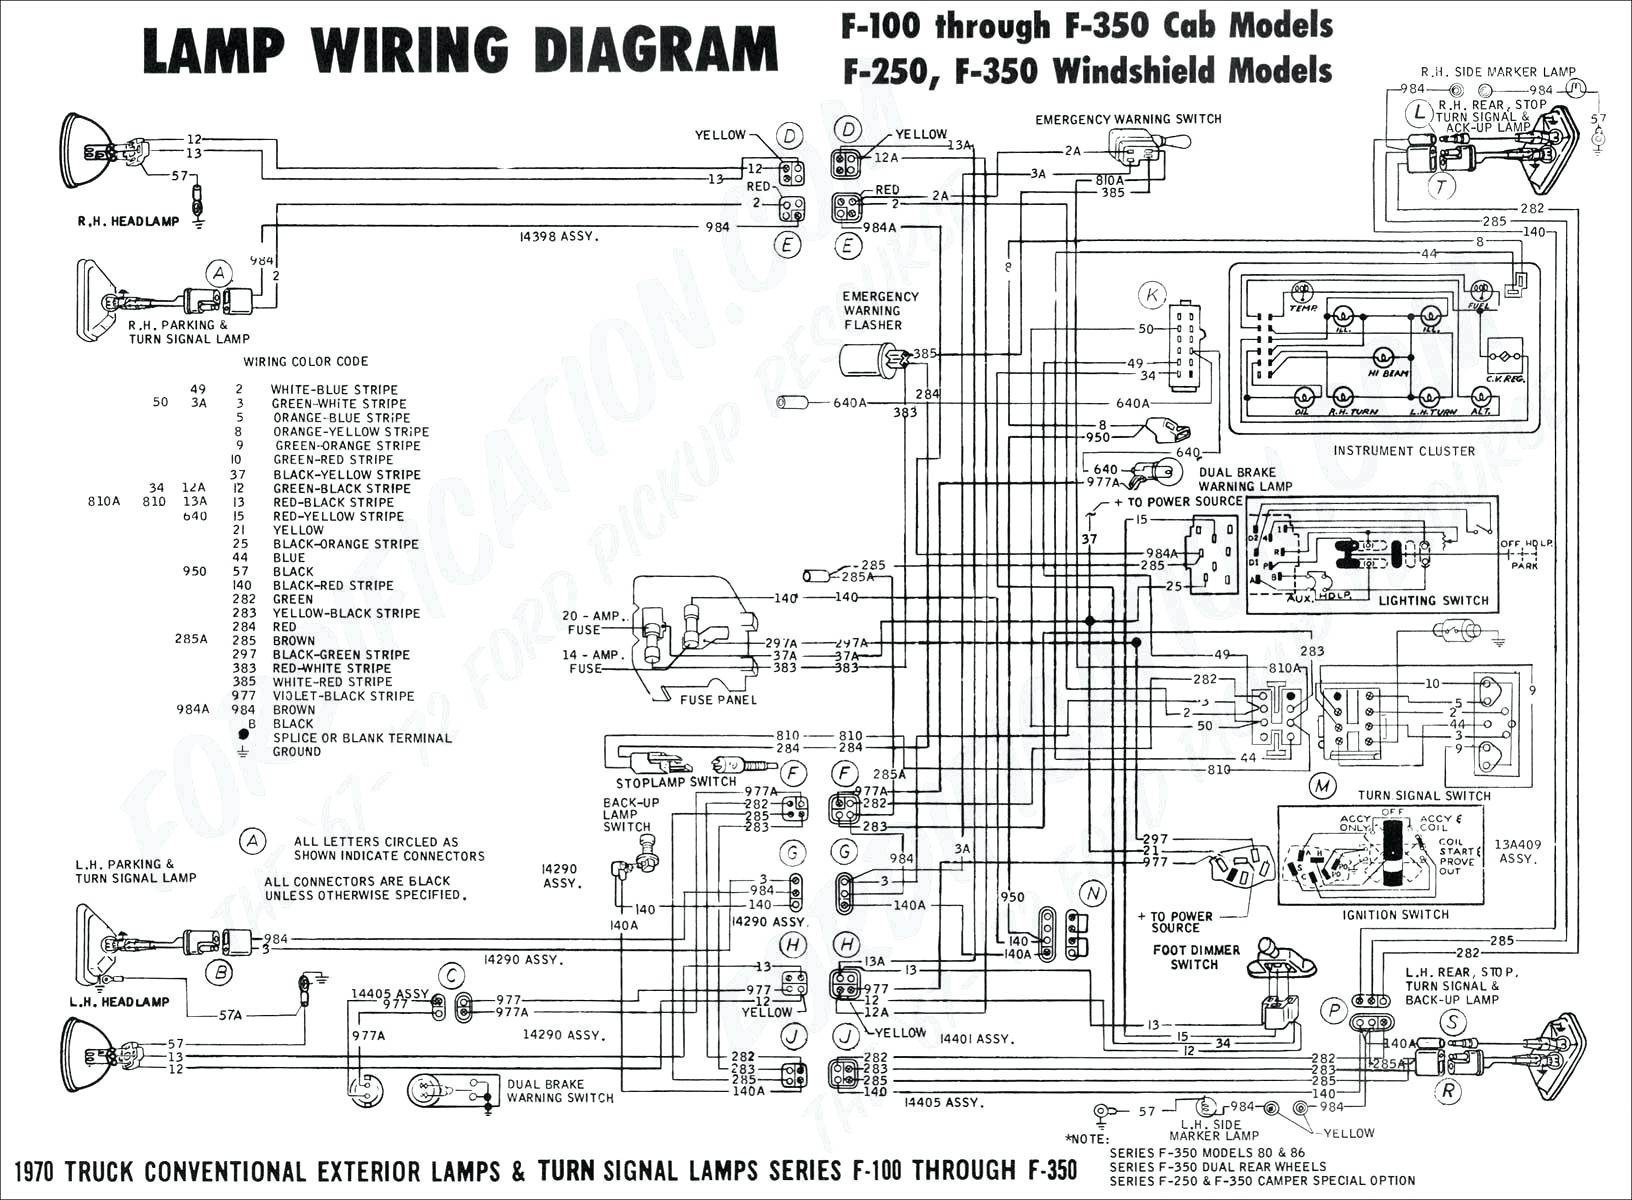 hight resolution of mini truck wiring diagram simple wiring diagram rh david huggett co uk mitsubishi triton mn towbar